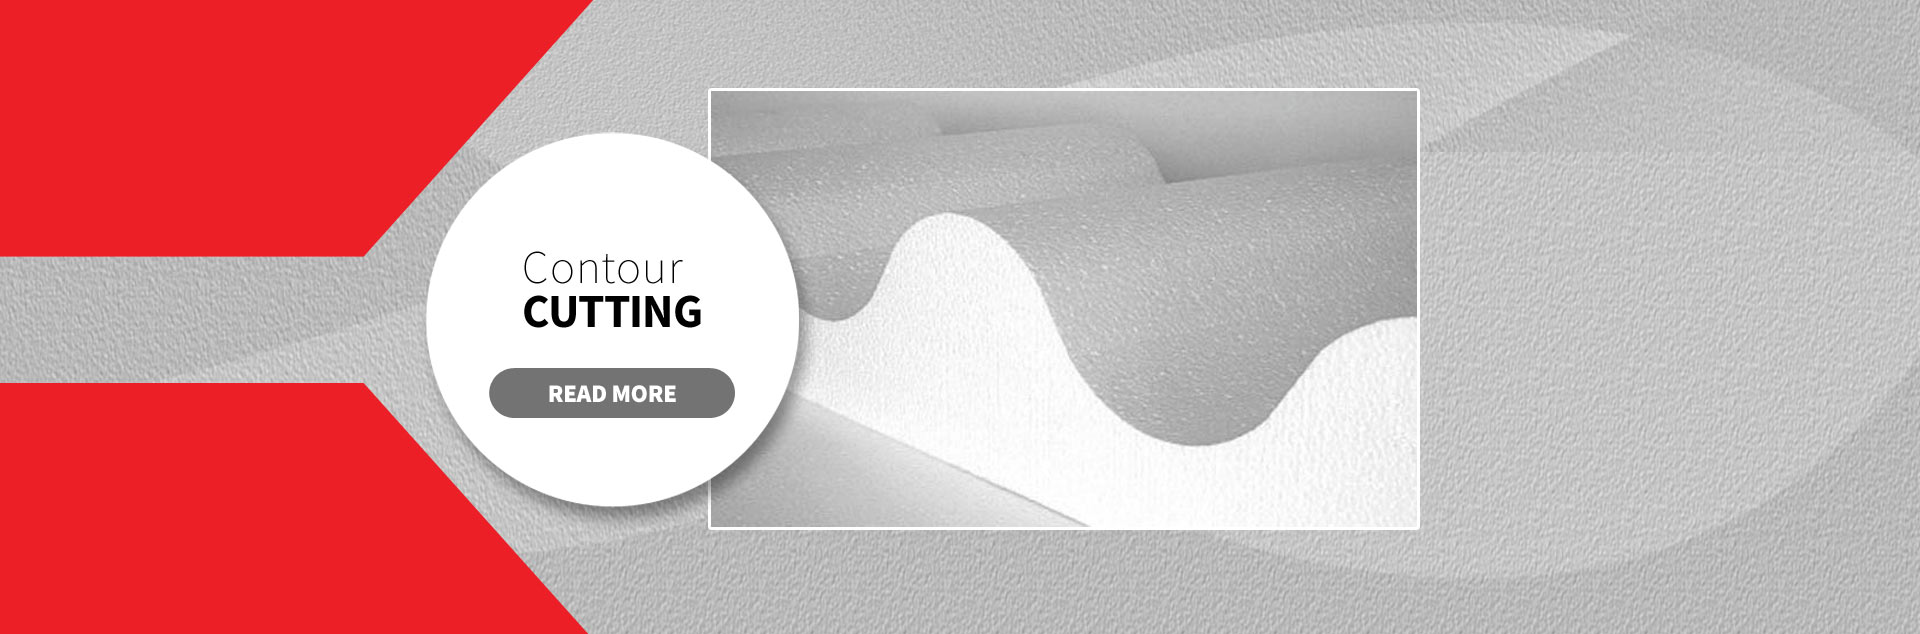 Polystyrene Contour Cutting suppliers